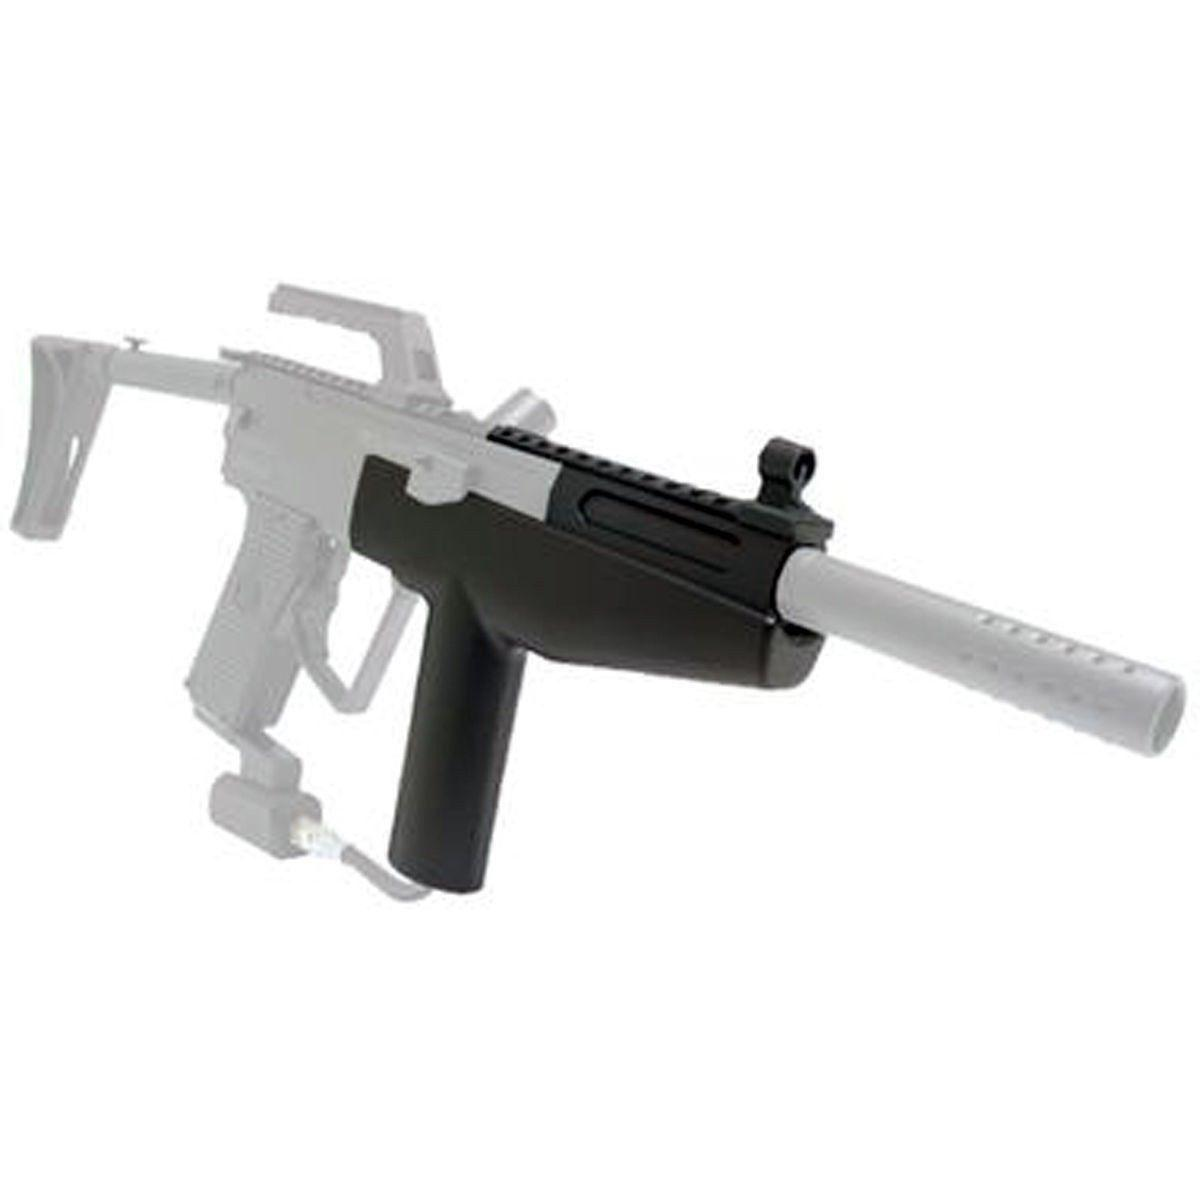 mr series paintball gun assault style body